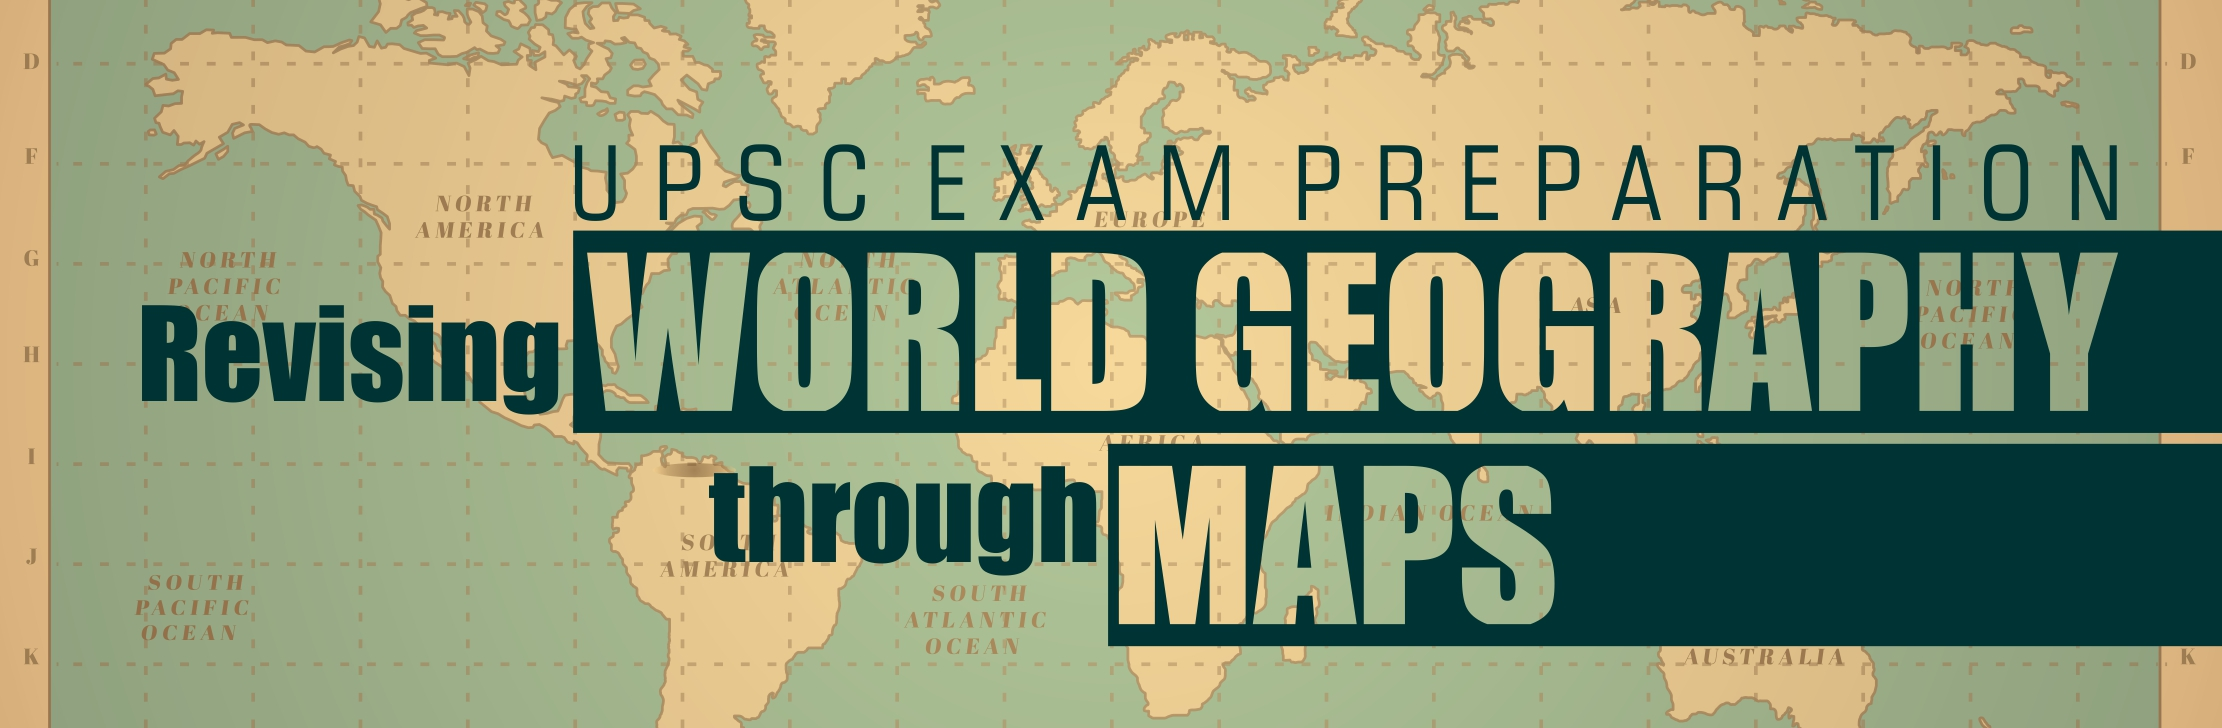 Upsc exam preparation revising world geography through maps upsc exam preparation revising world geography through maps gumiabroncs Choice Image